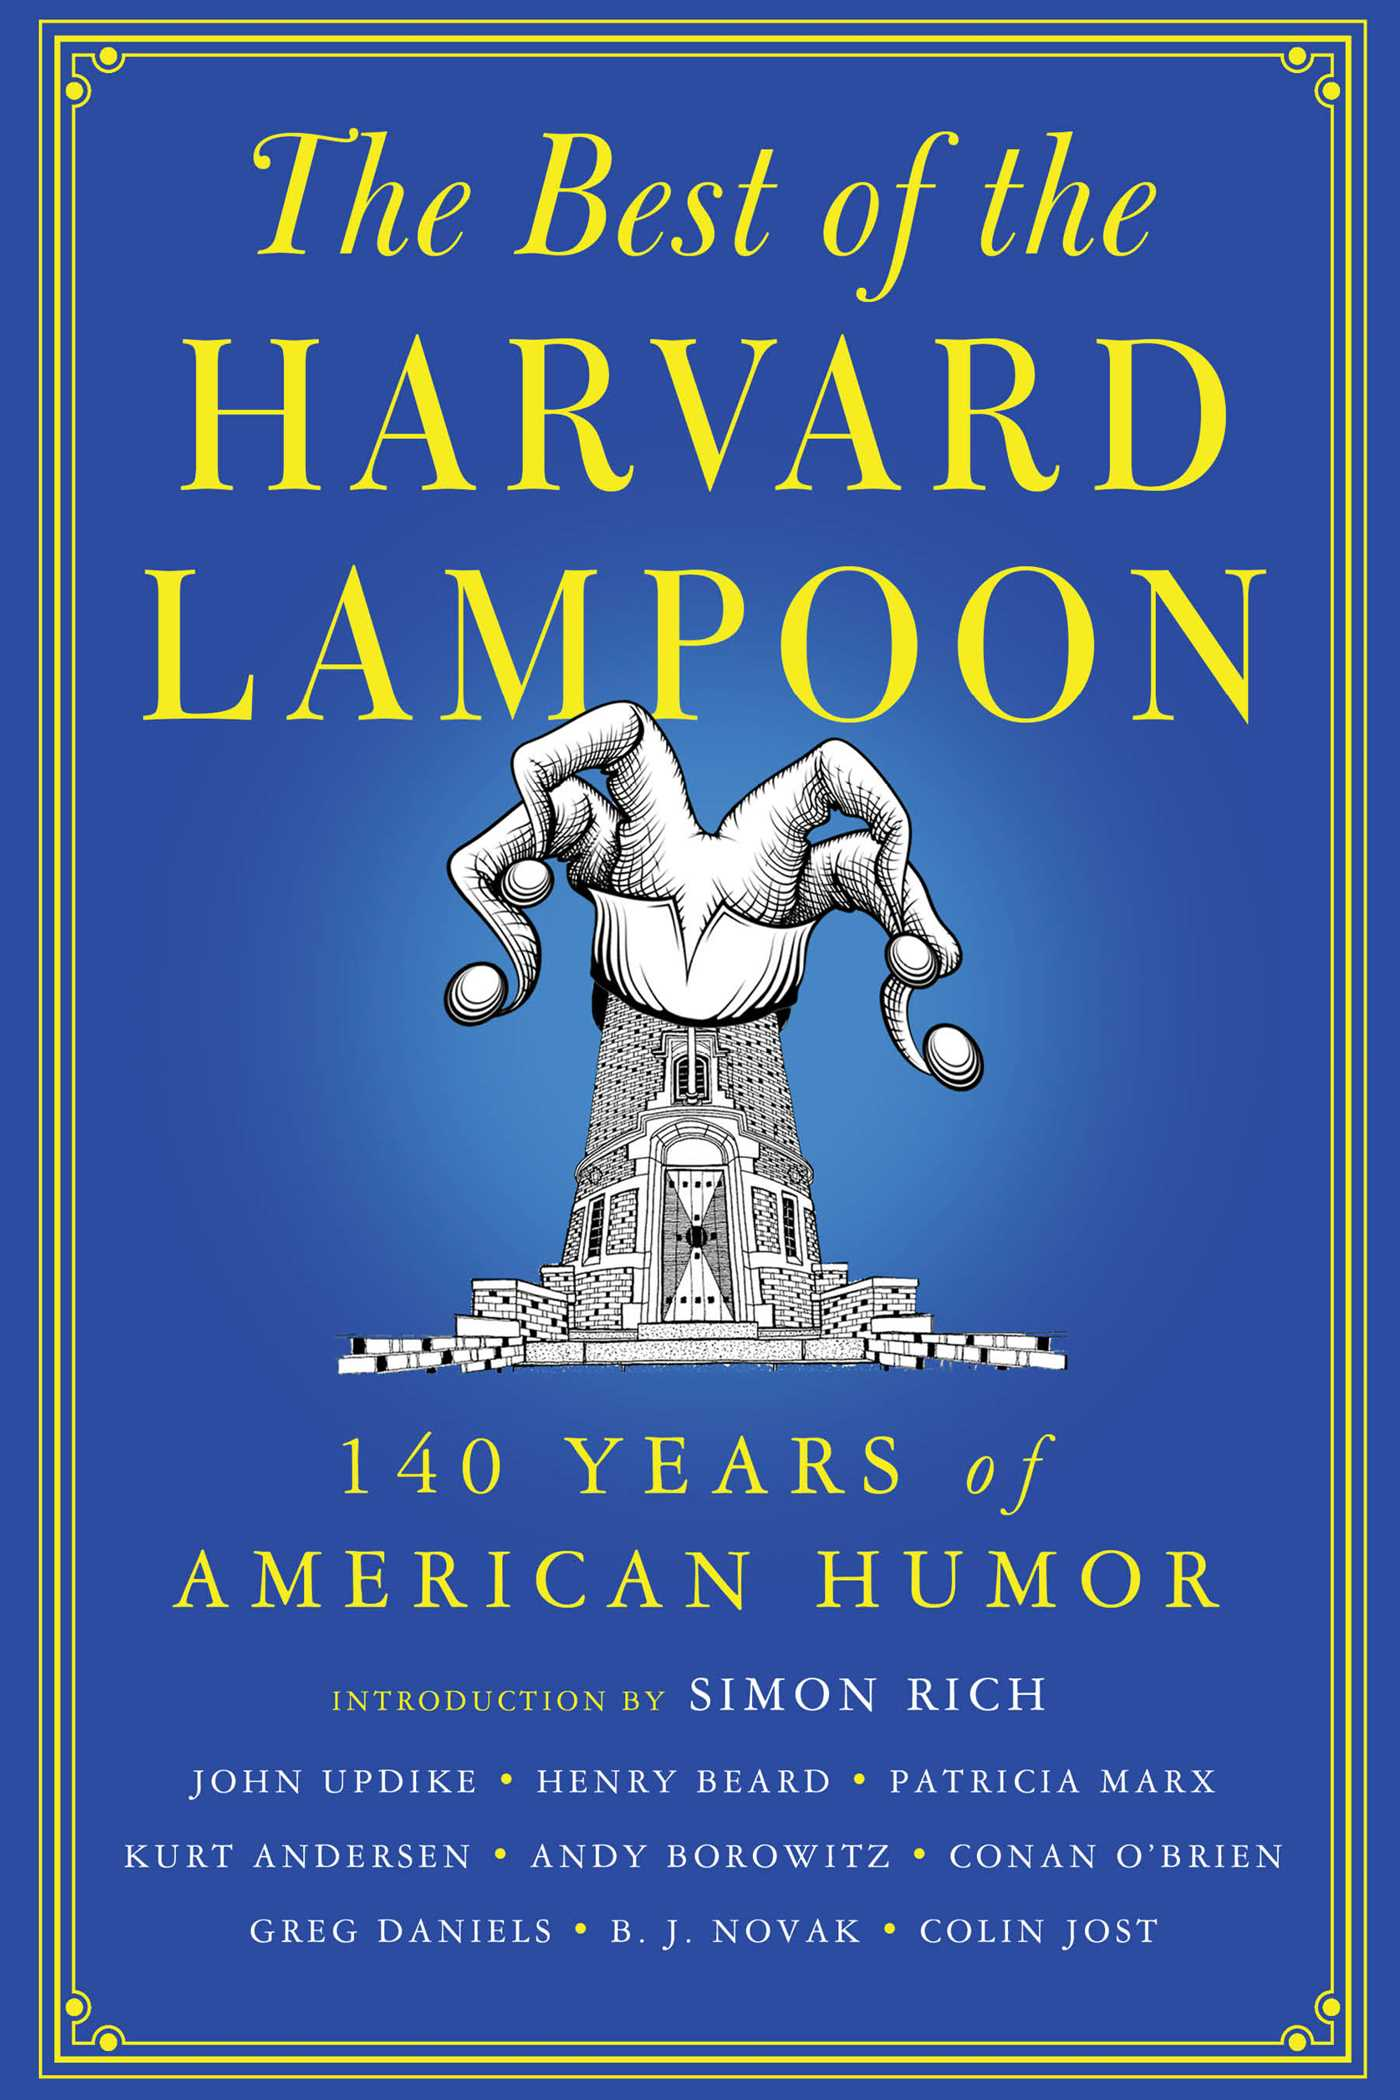 The best of the harvard lampoon 9781501109850 hr